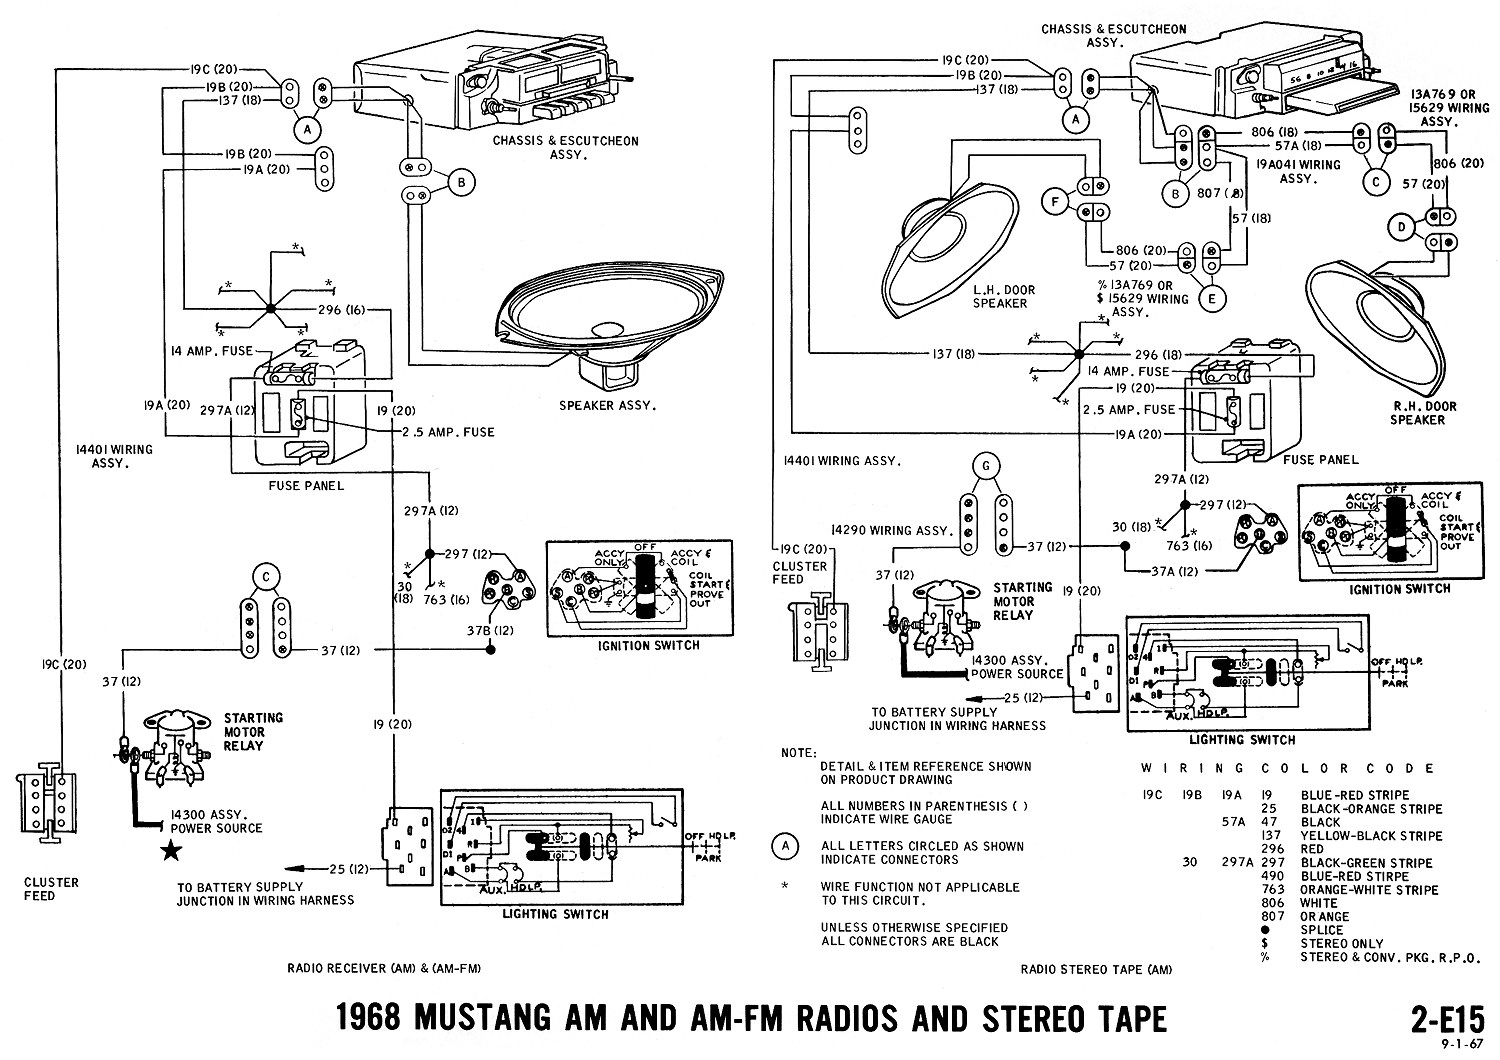 1968 Mustang Wiring Diagrams besides HP PartList together with 1974 Corvette Starter Wiring Diagram likewise 603957 Parking Brake Pad Replace besides Showthread. on 1970 chevelle wiring diagram